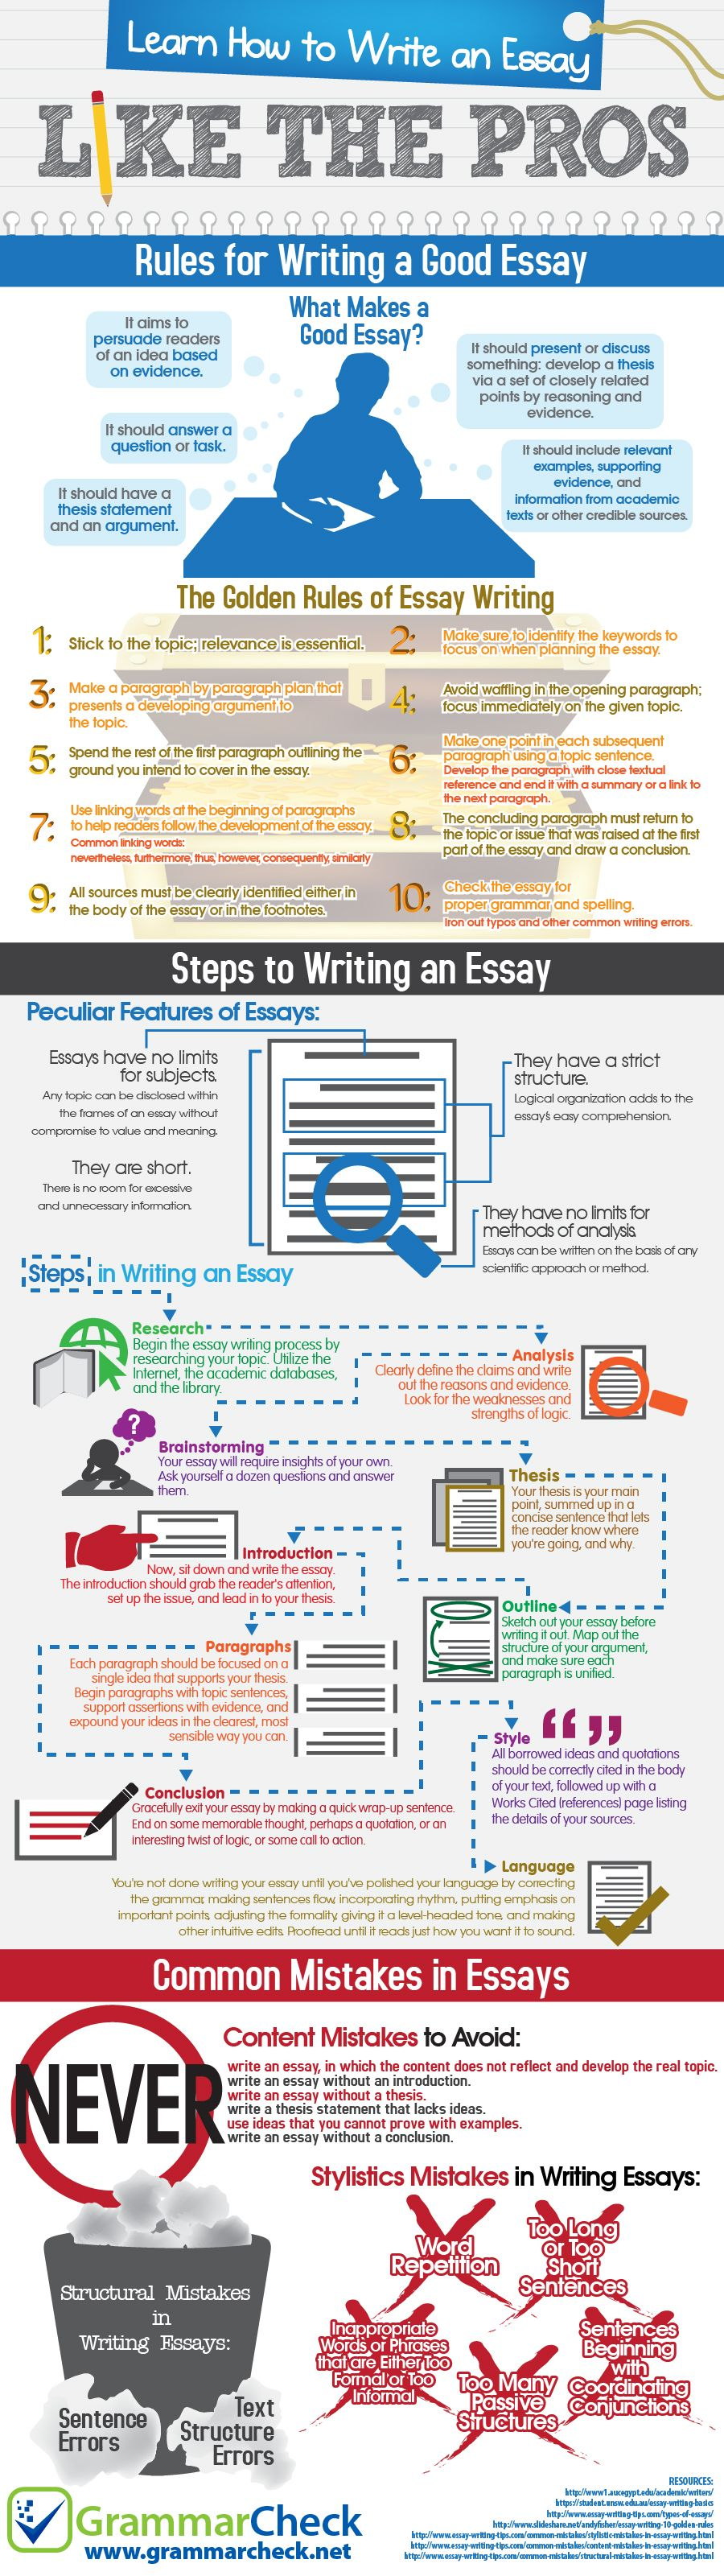 Essays On Importance Of English How To Write An Essay Like The Pros Infographic Thesis Examples For Argumentative Essays also Paper Essay How To Write An Essay Like The Pros Infographic  Study Tips  Health Care Essay Topics